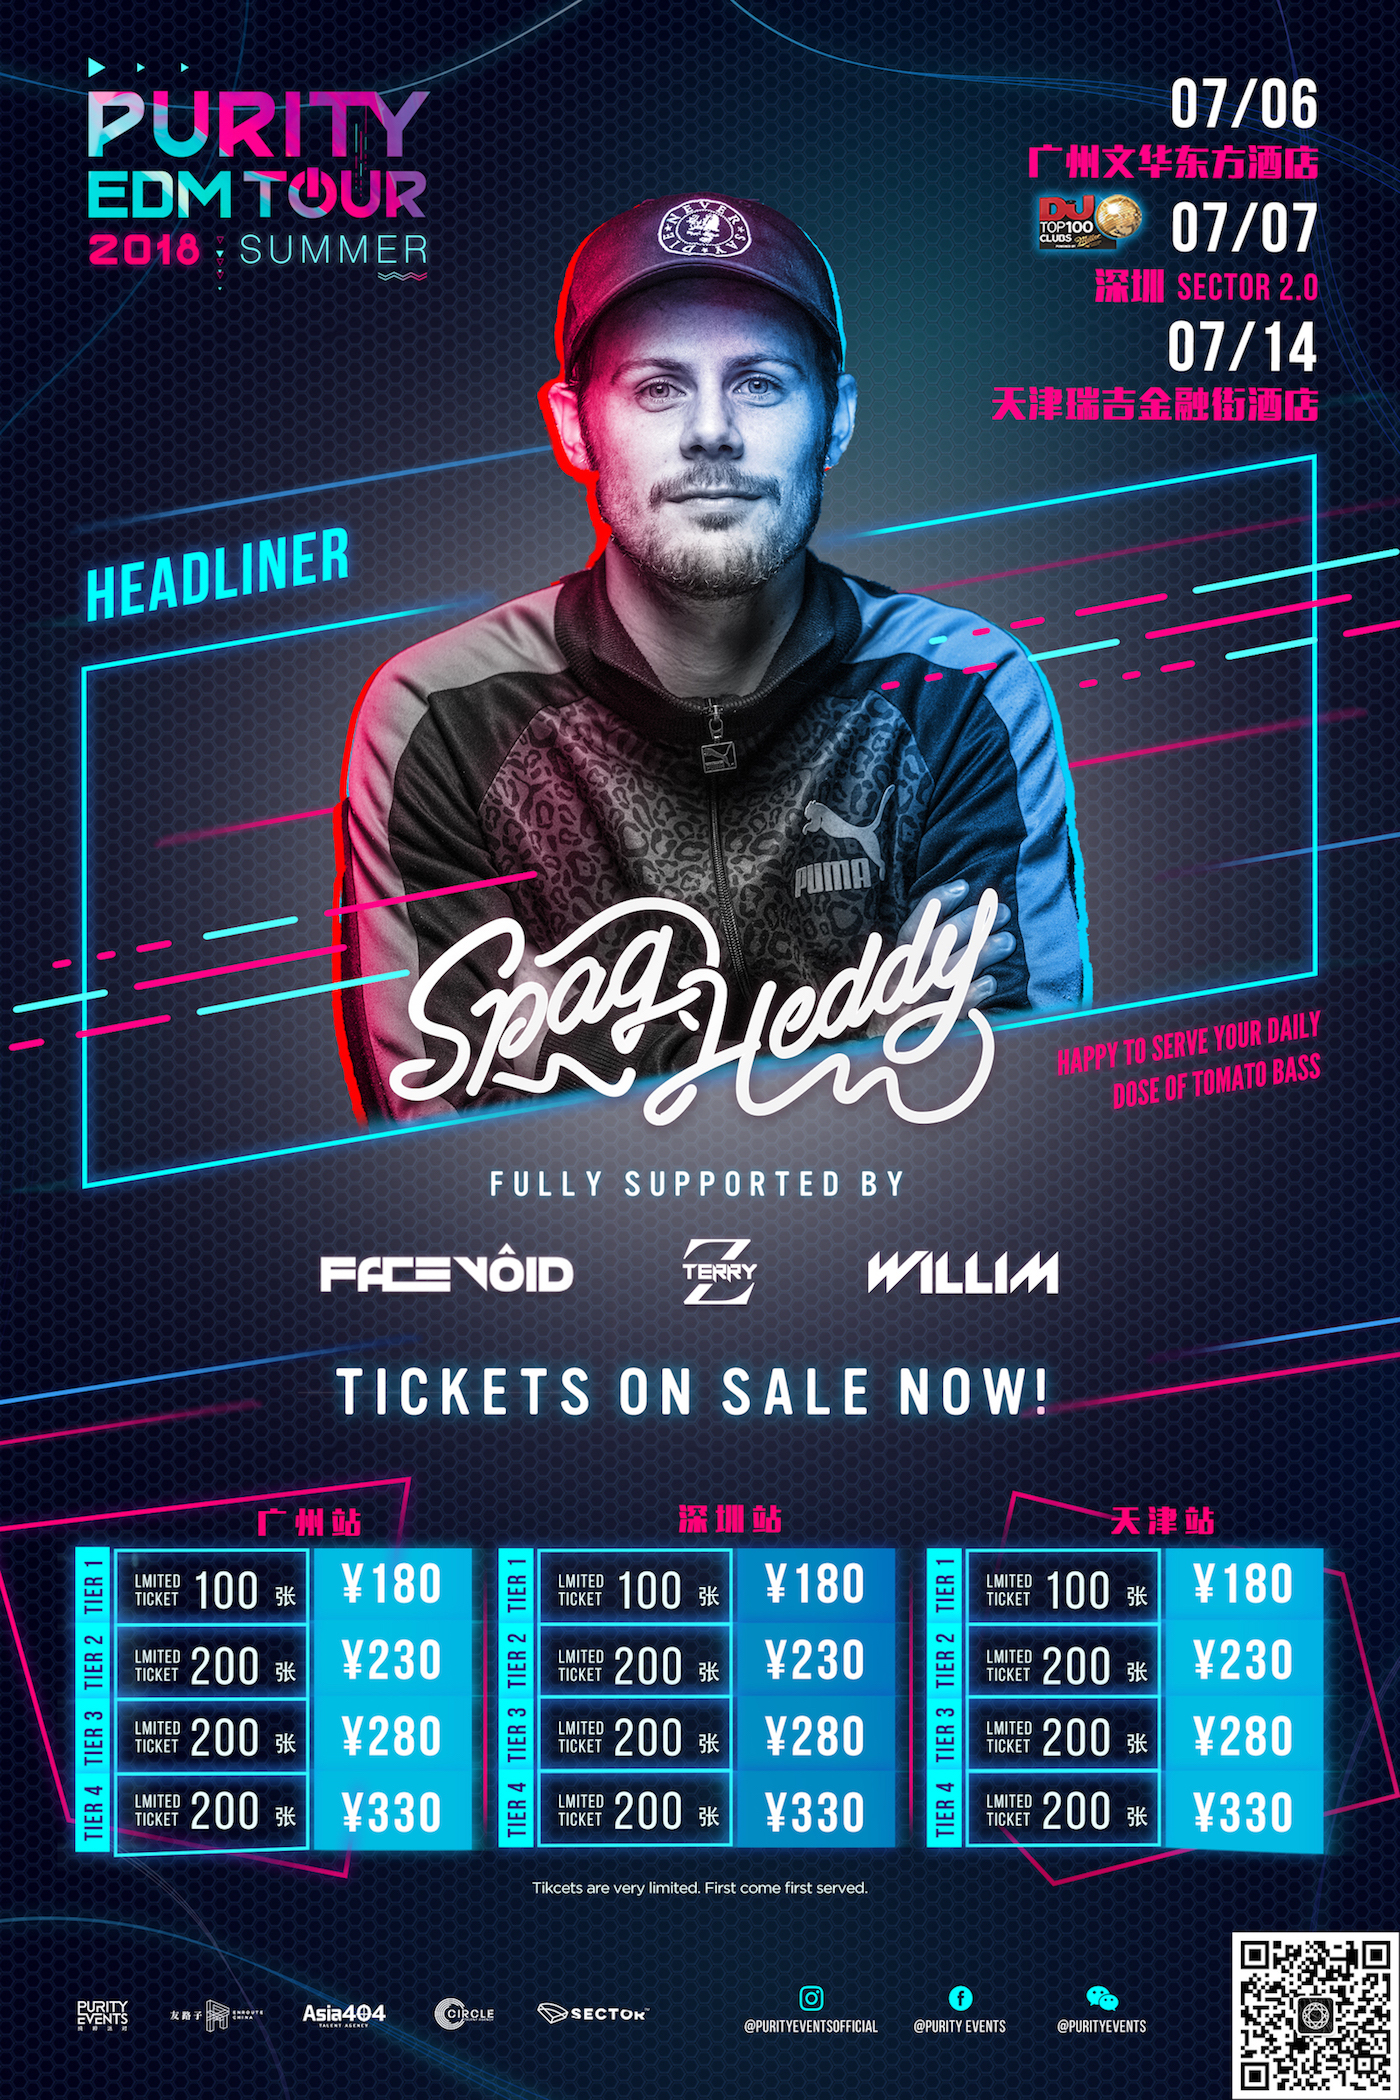 PURITY EDM TOUR 2018: Spag Heddy